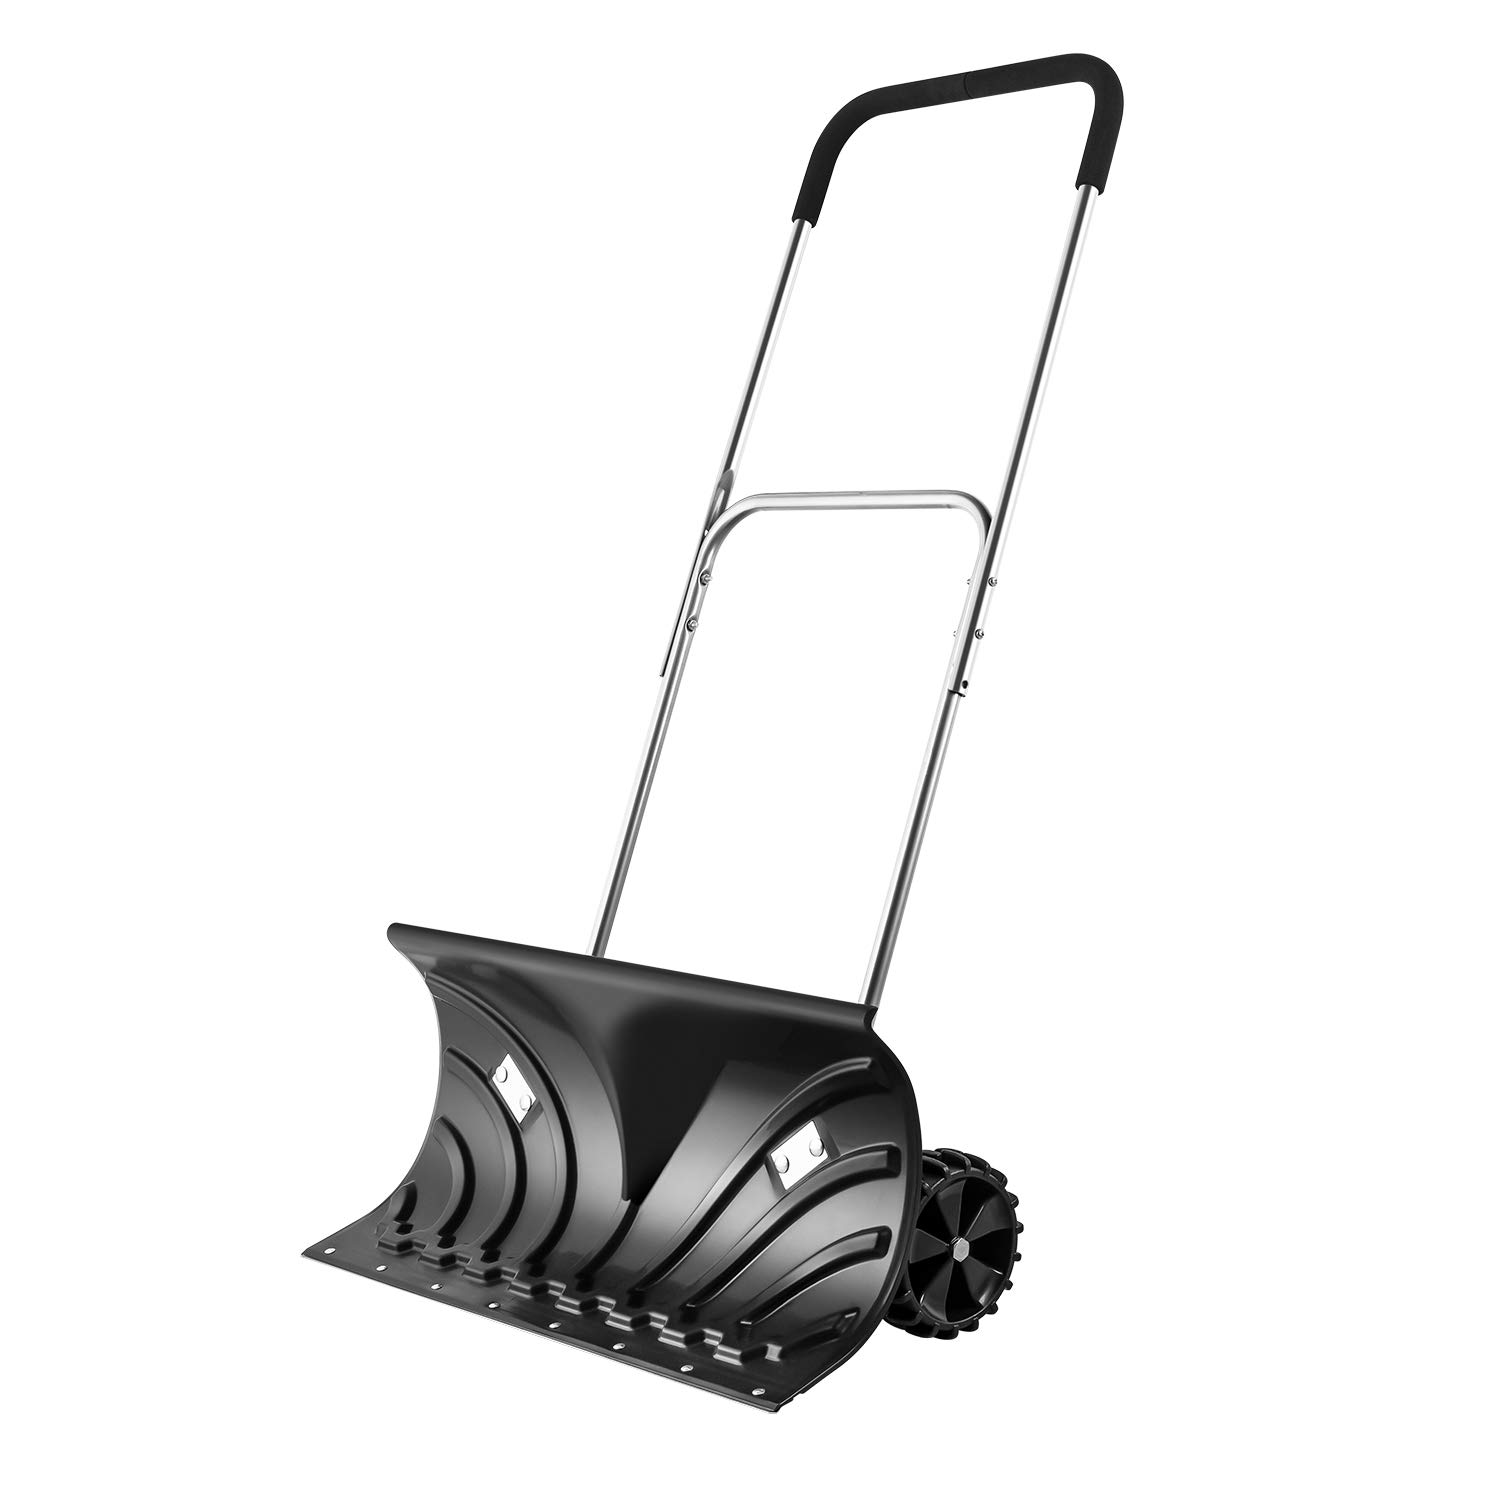 ORIENTOOLS Heavy Duty Snow Shovel, Rolling Adjustable Snow Pusher with 6'' Wheels, Efficient Snow Plow Suitable for Driveway or Pavement Clearing (25'' Blade) by ORIENTOOLS